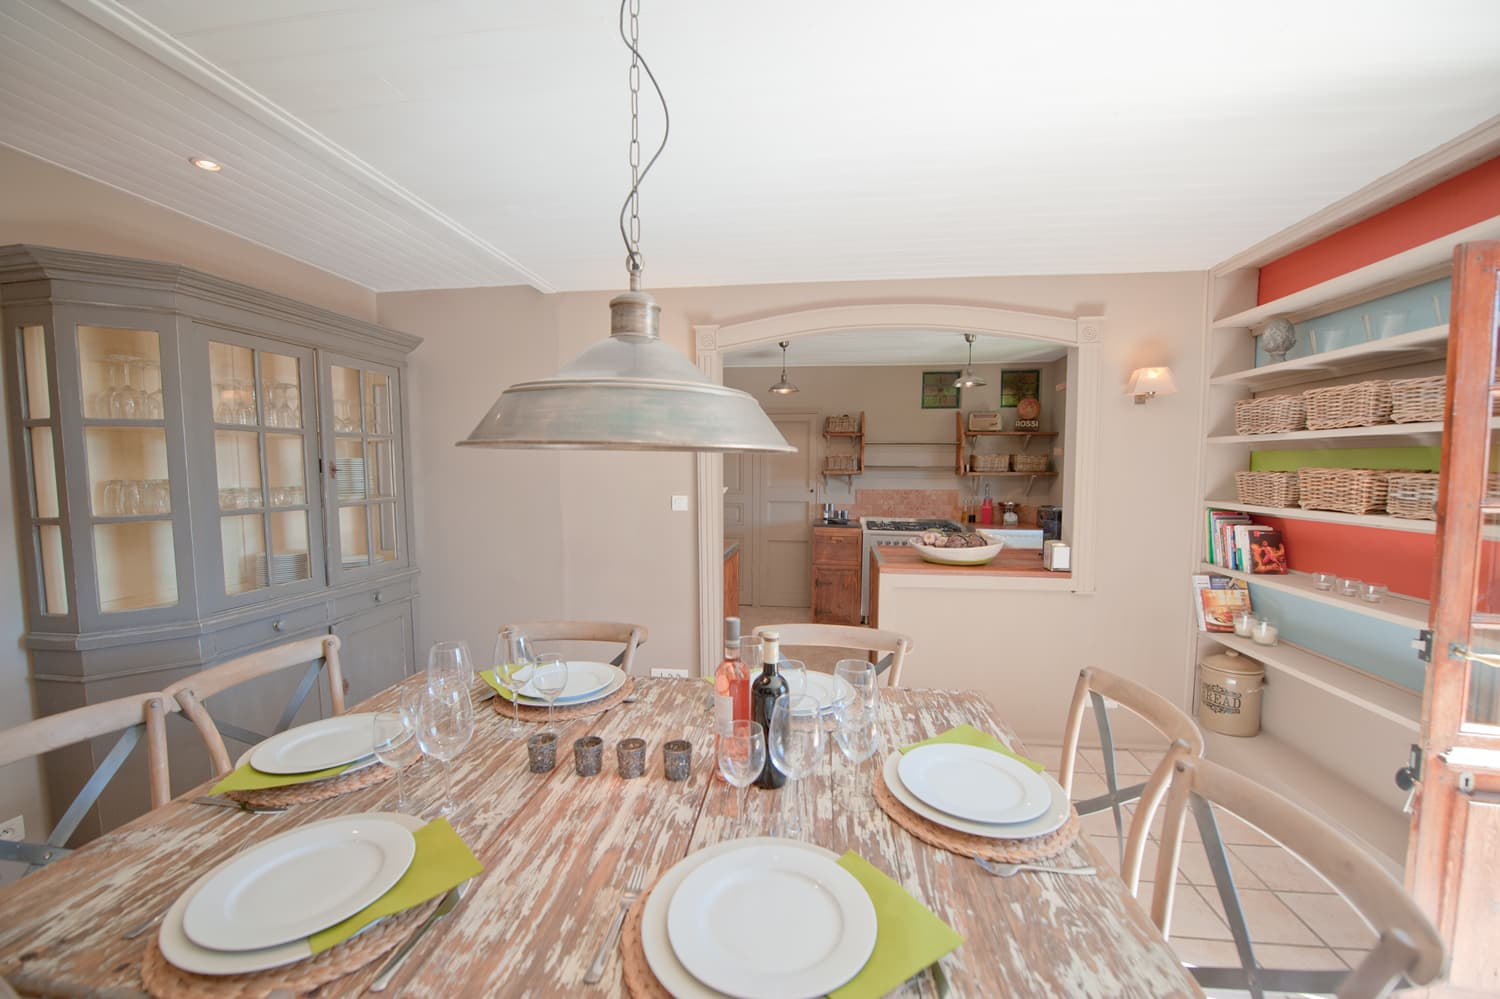 Dining room in Dordogne rental home